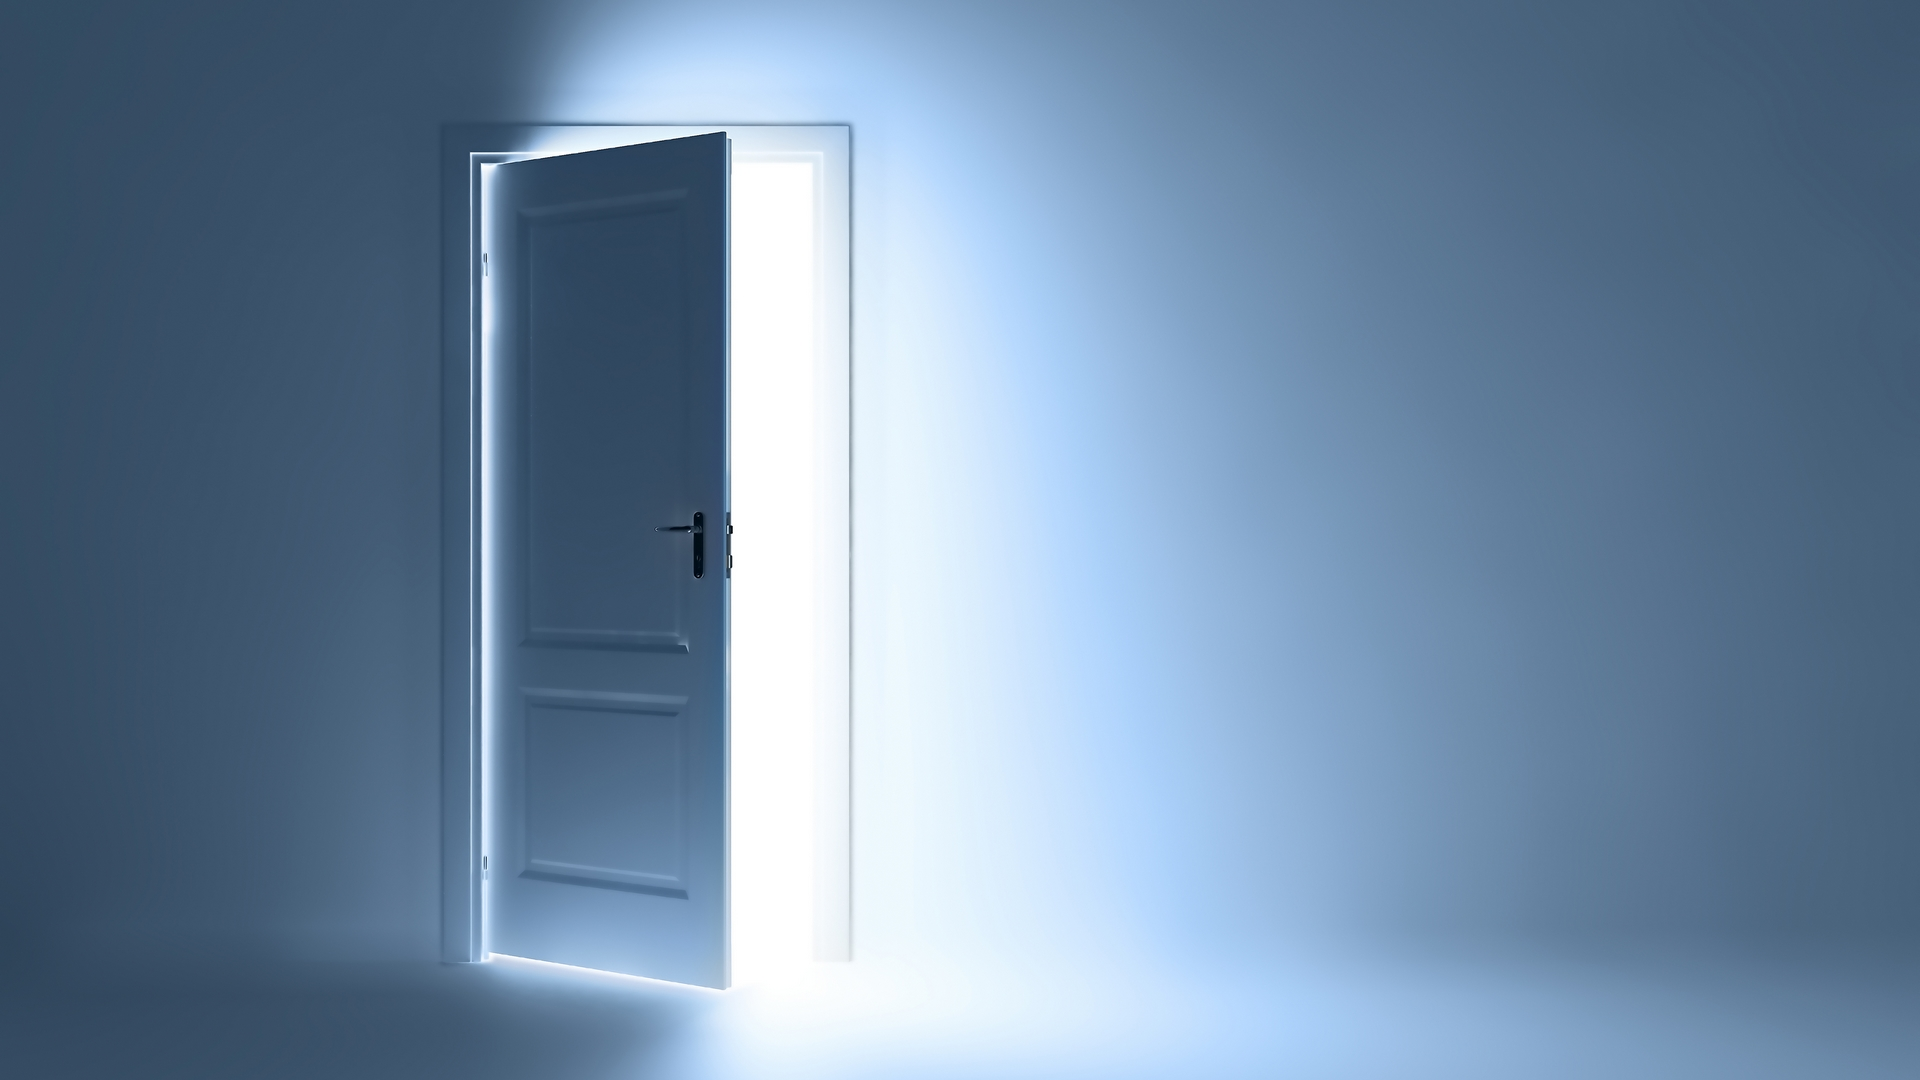 Door Backgrounds - HD Wallpaper